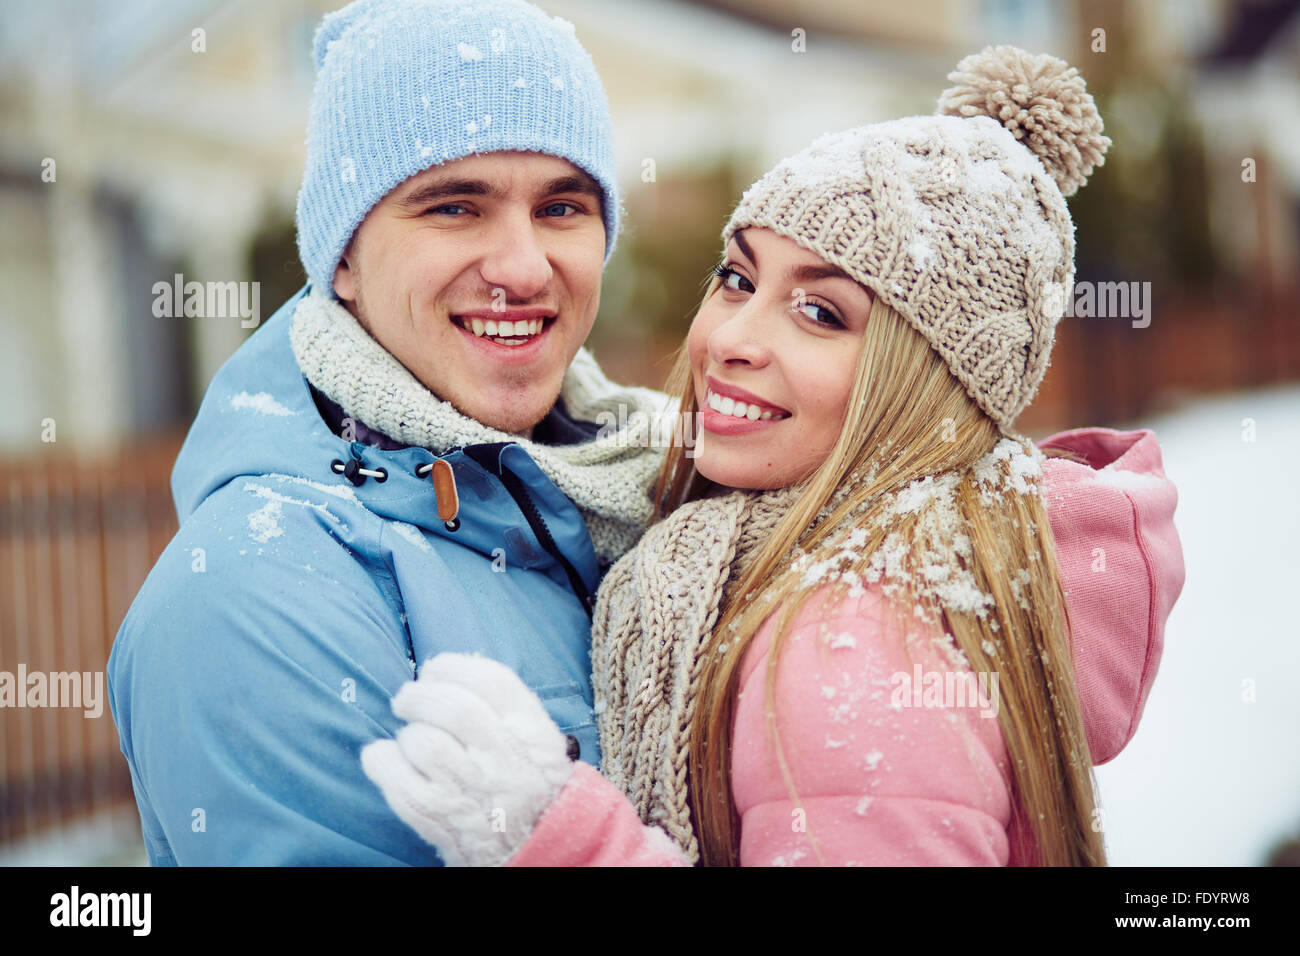 Young dates looking at camera with toothy smiles - Stock Image